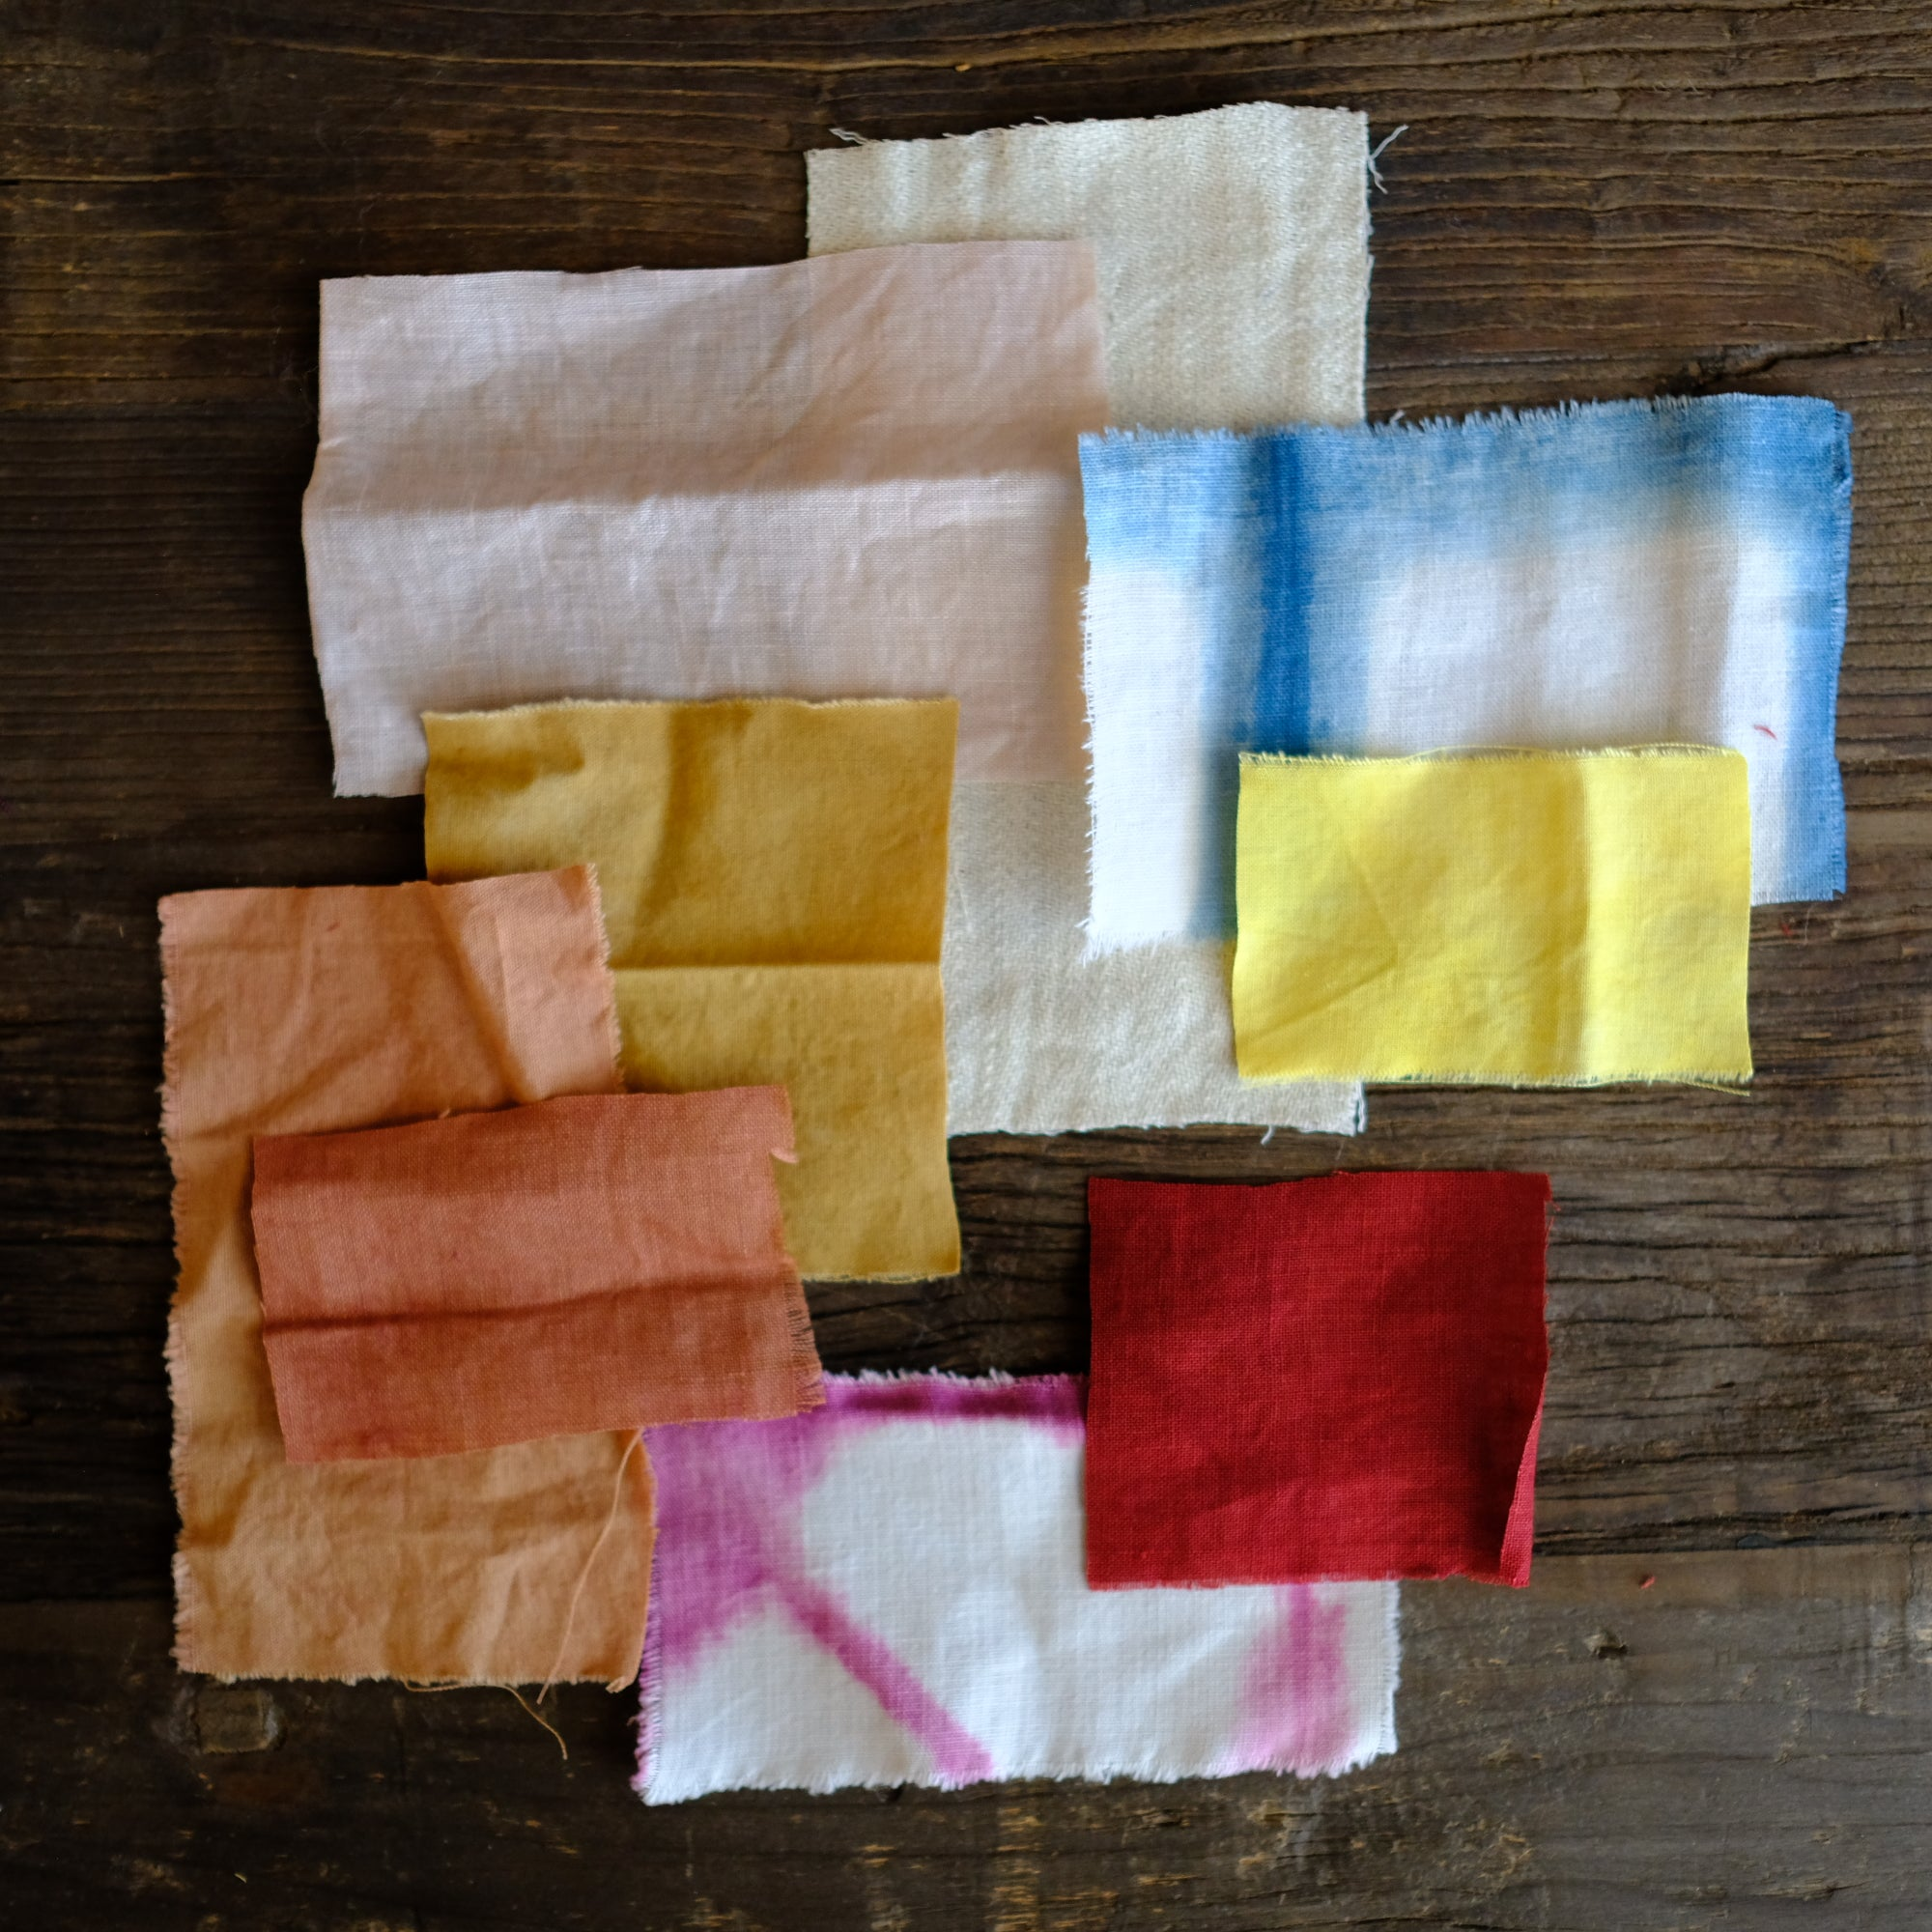 AVFKW Naturally Dyed Scrappy Fabric Bundle - NEW!